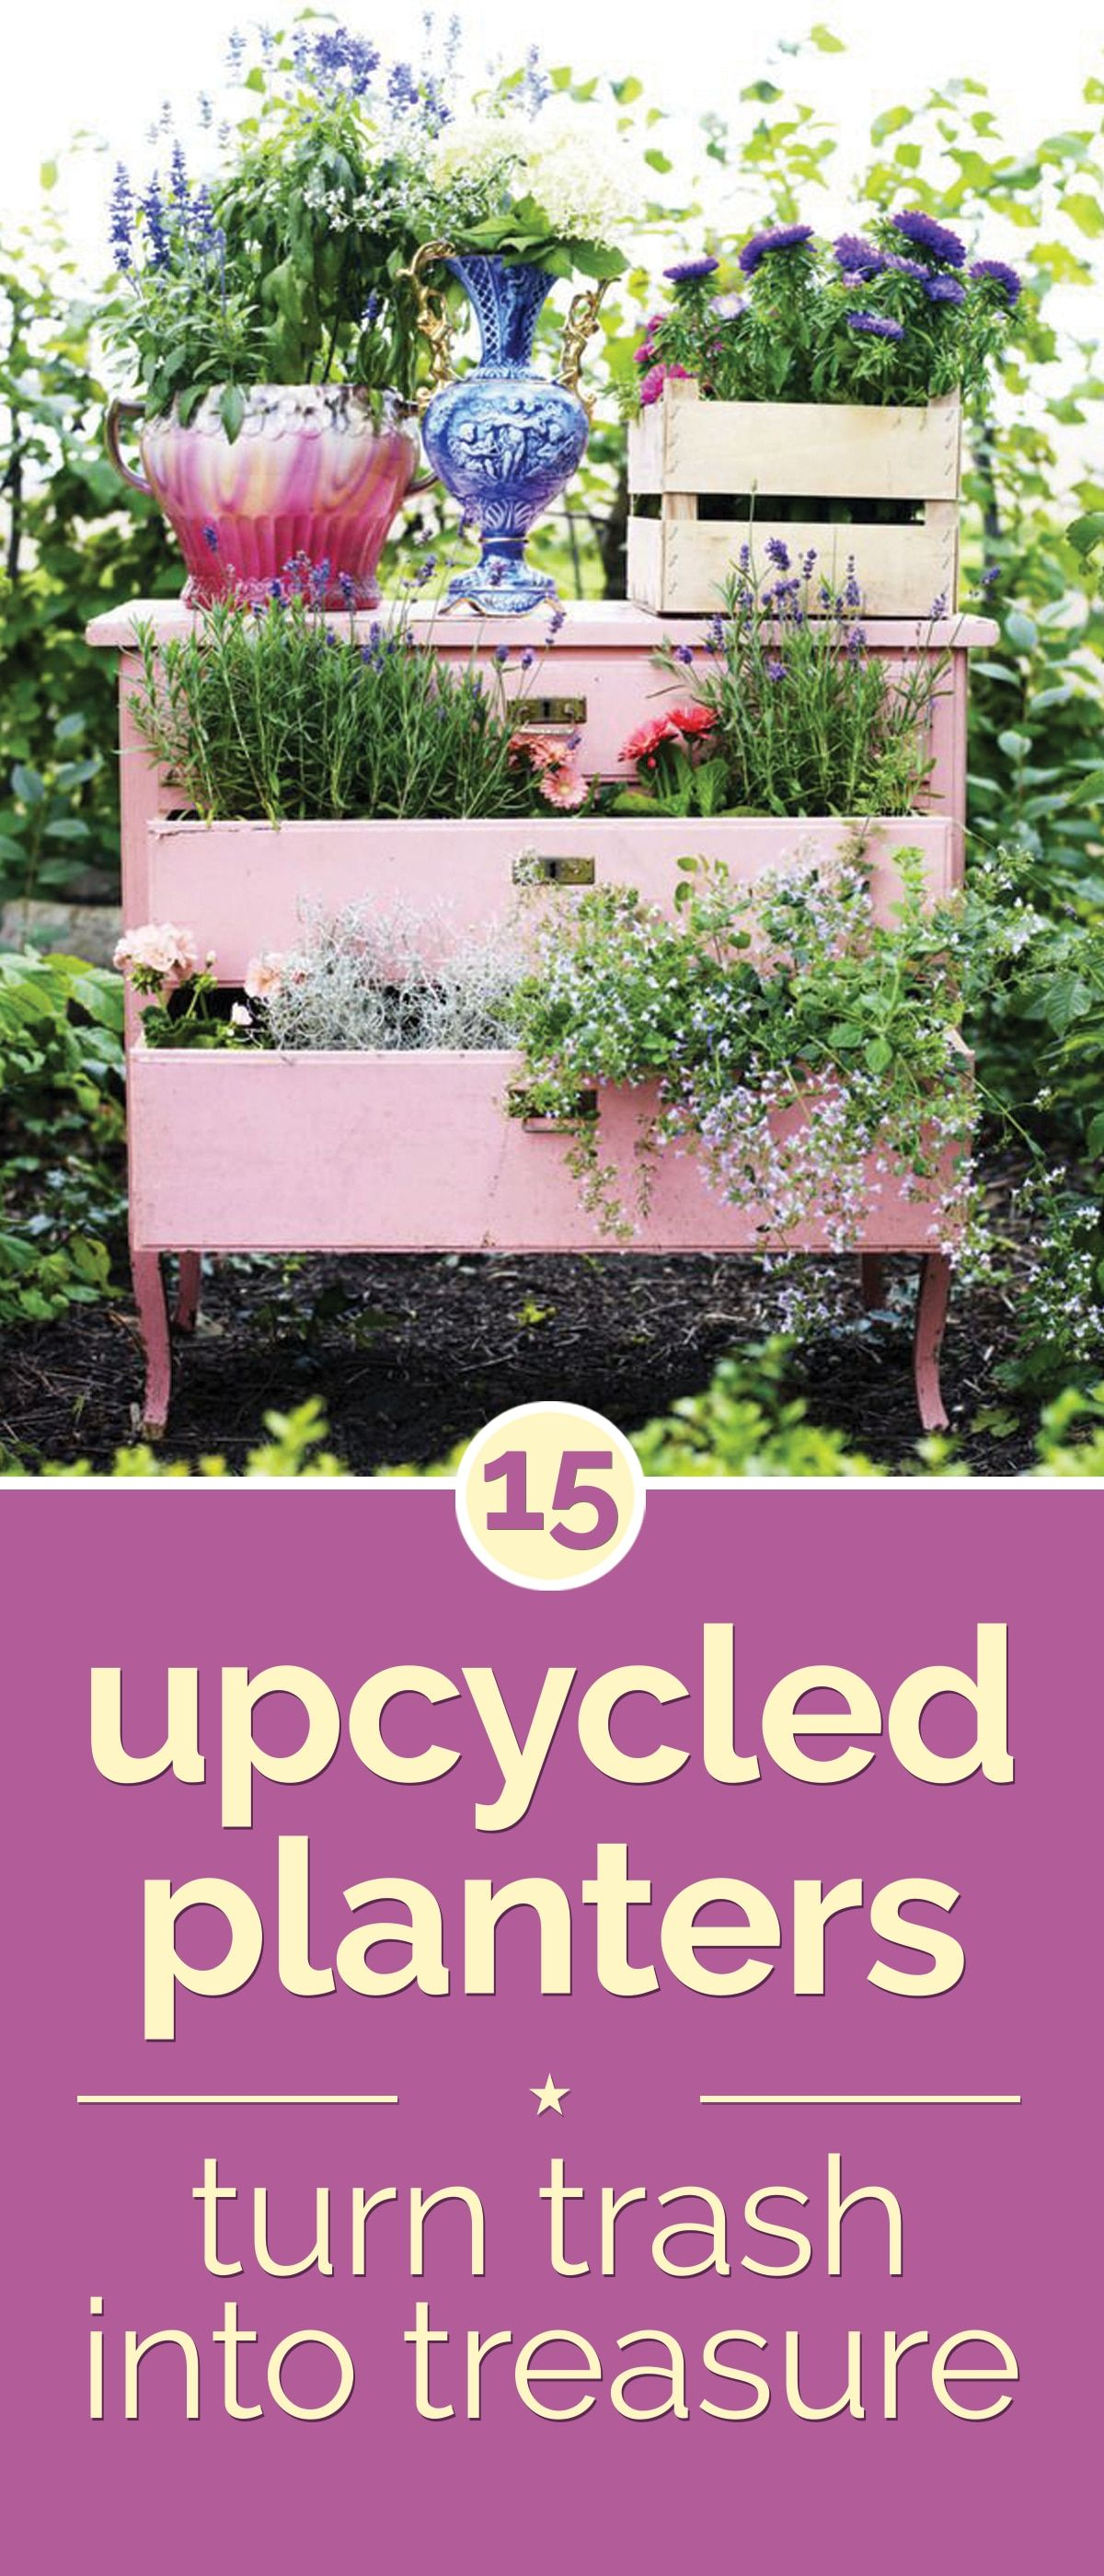 15 Upcycled Planters Turn Trash into Treasure is part of Upcycled garden Art - Upcycled planters can bring some beauty to your garden, by using items you might have just thrown away  Nothing goes to waste with these upcycled planters